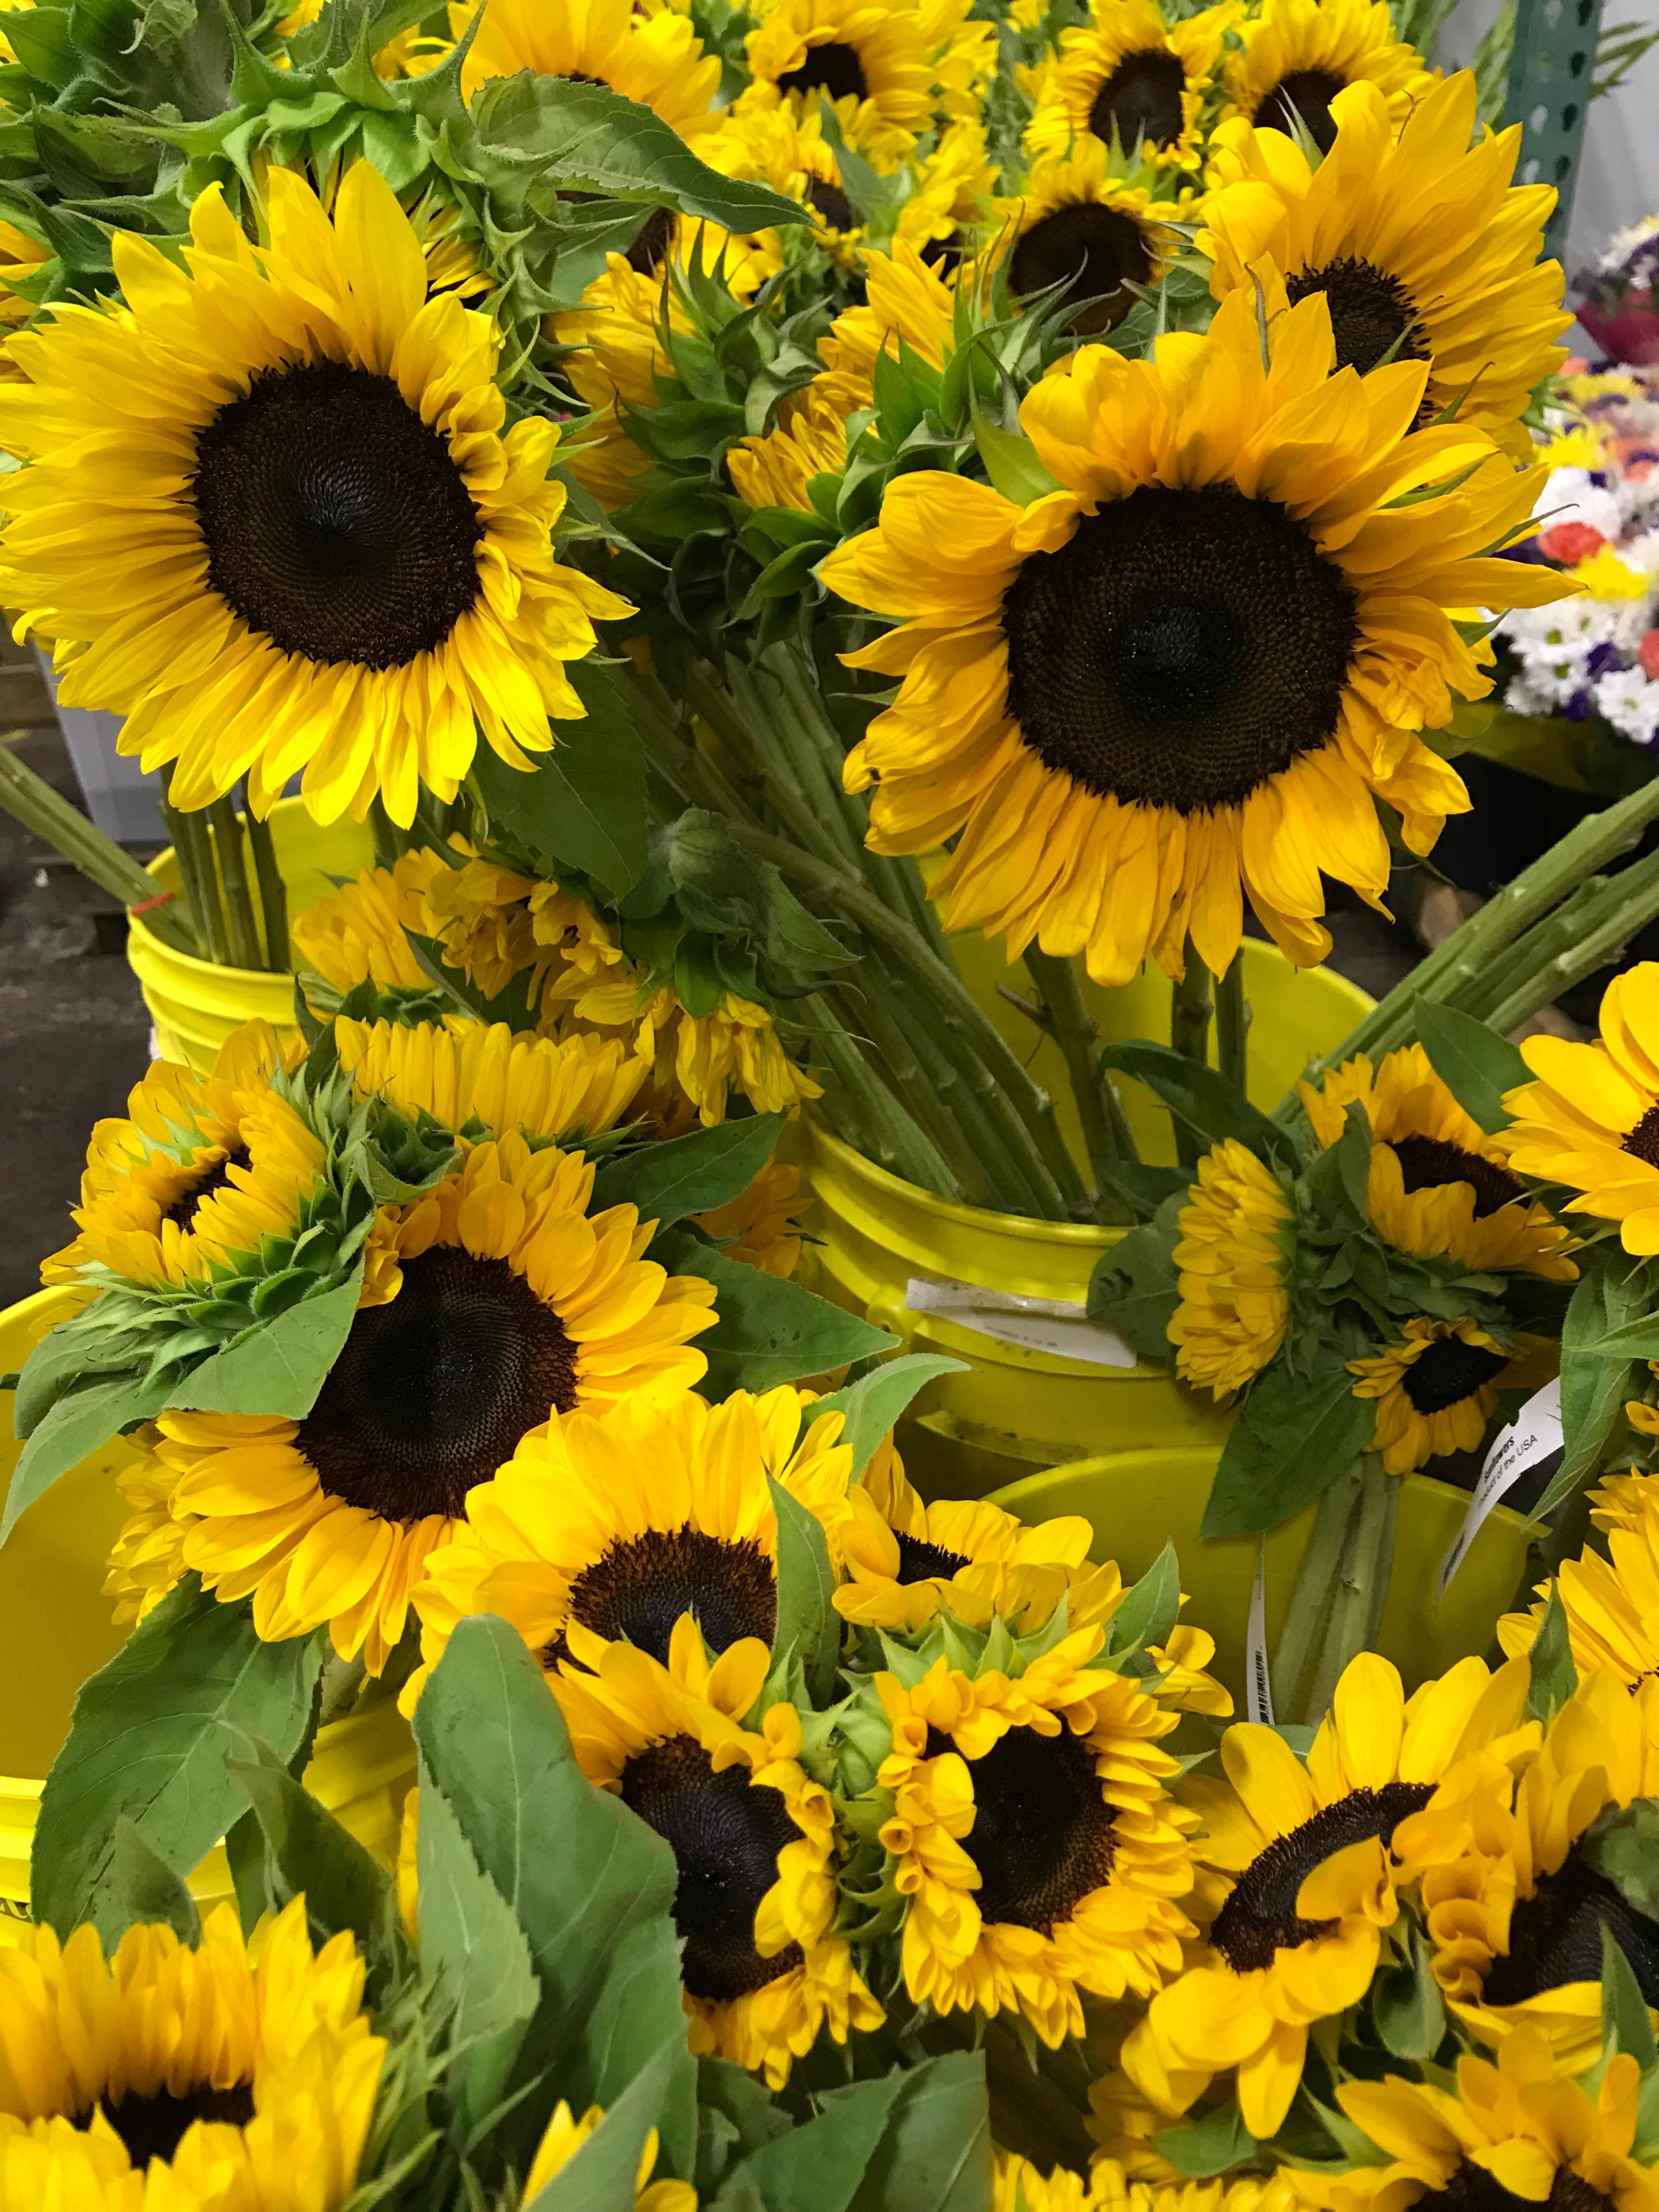 Sunflowers Wholesale Flowers Types Of Flowers Flowers Online